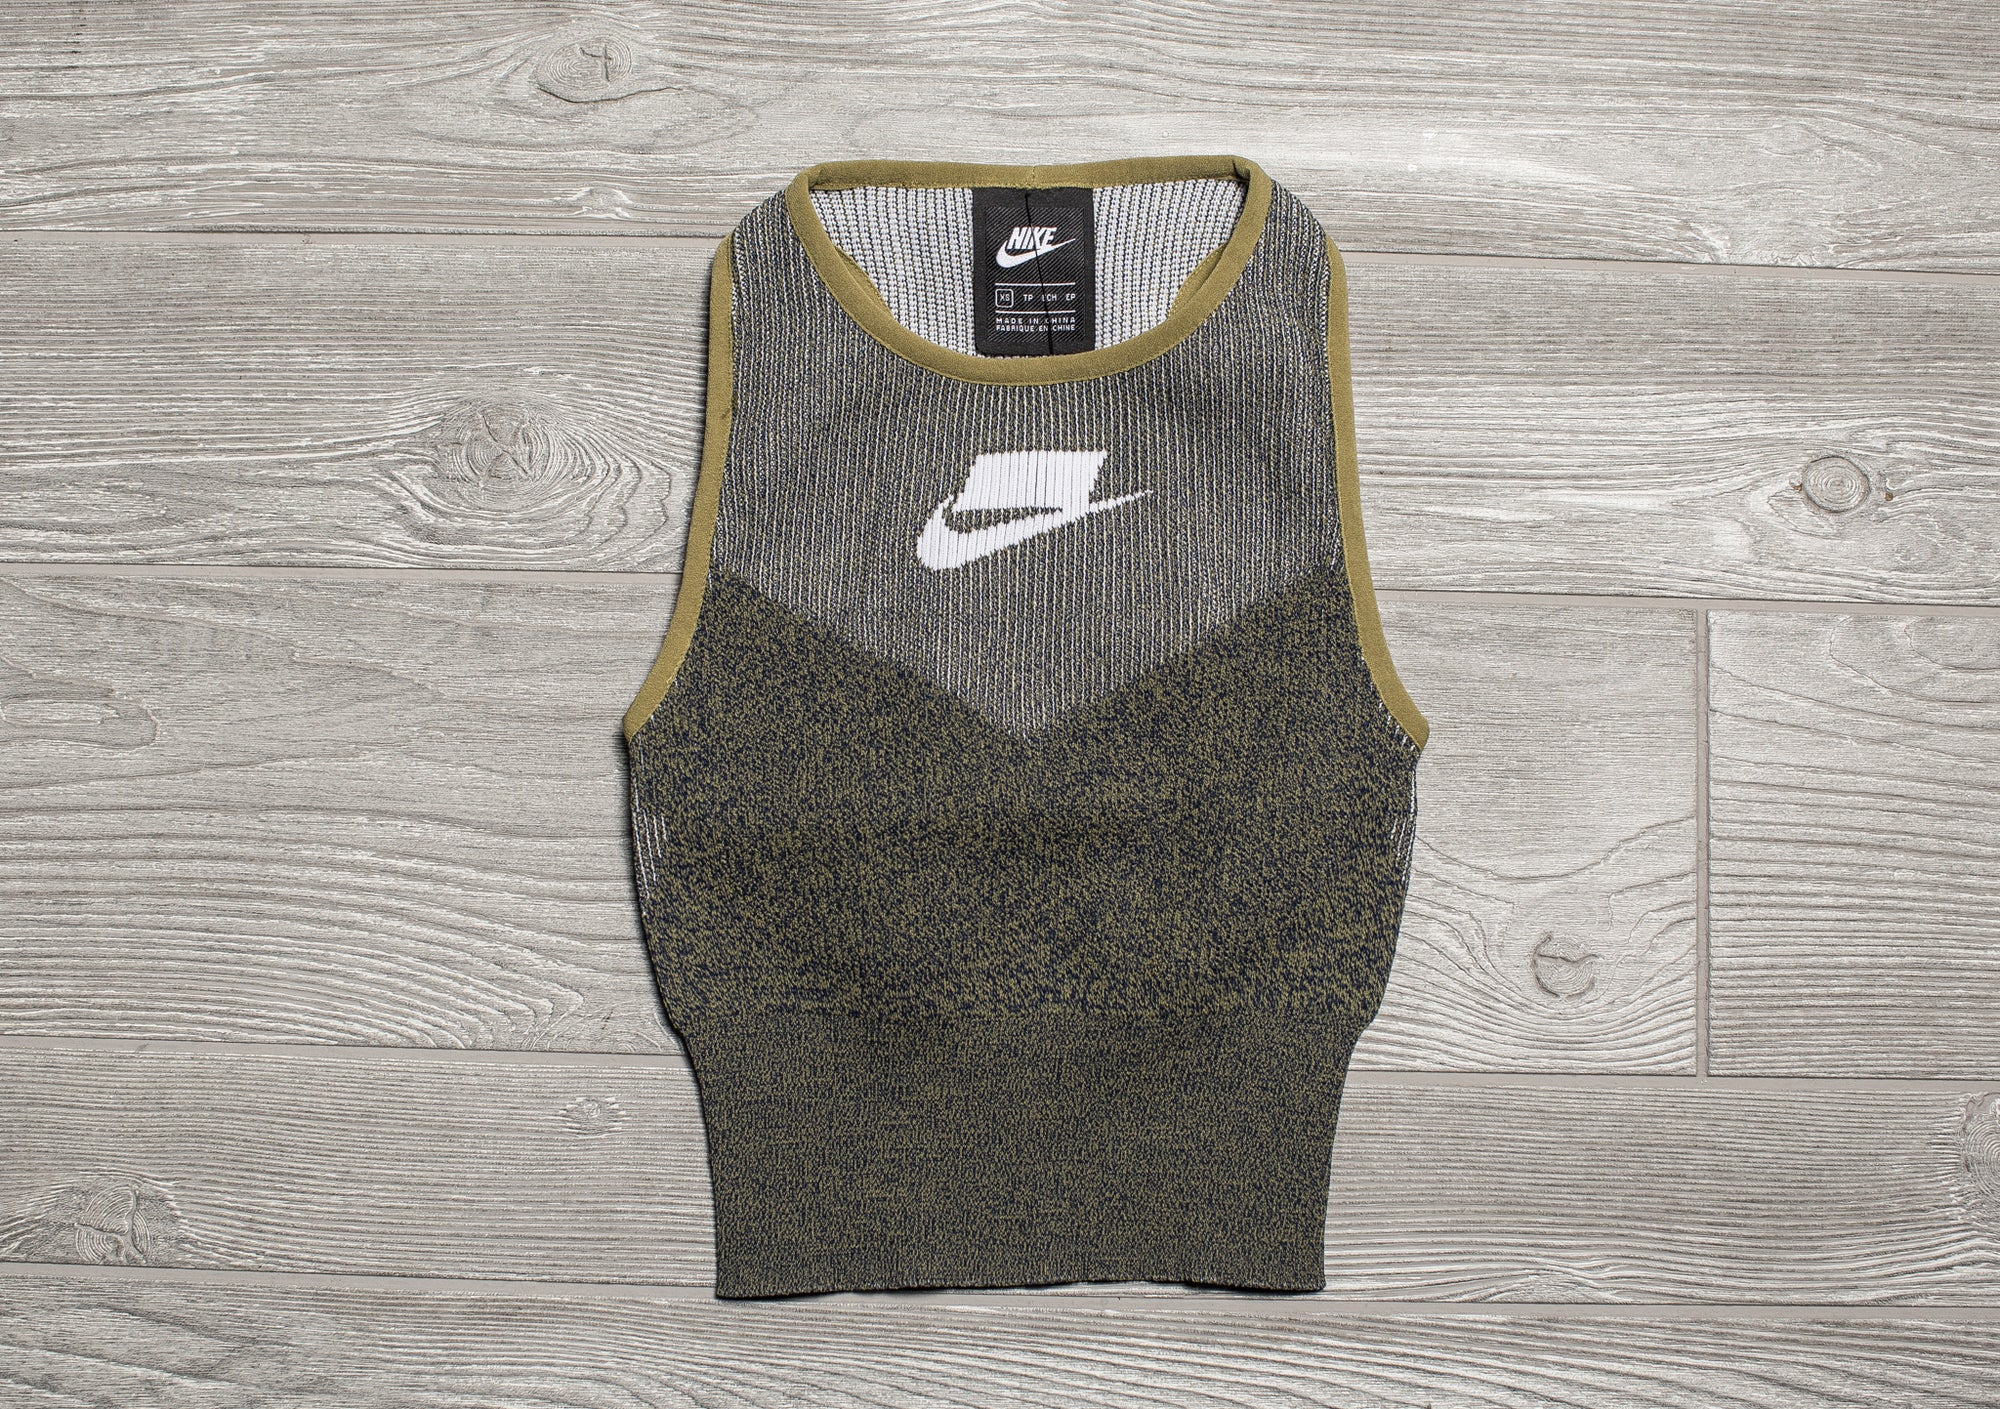 NIKE SPORTSWEAR NSW TOP